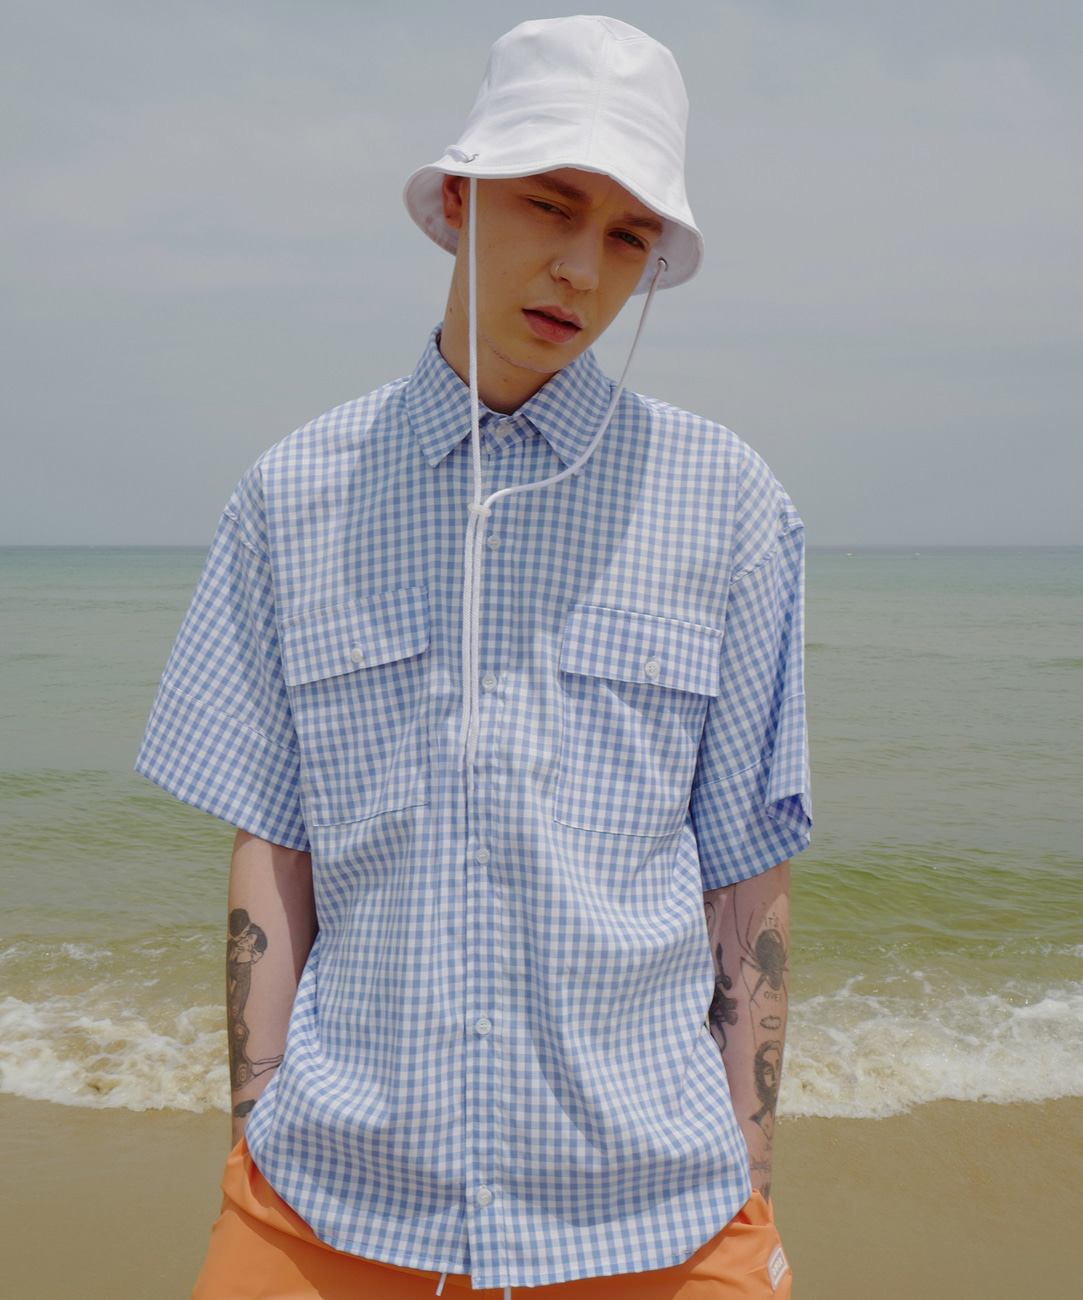 Oversized Cuffs Shirts (Gingham Check)